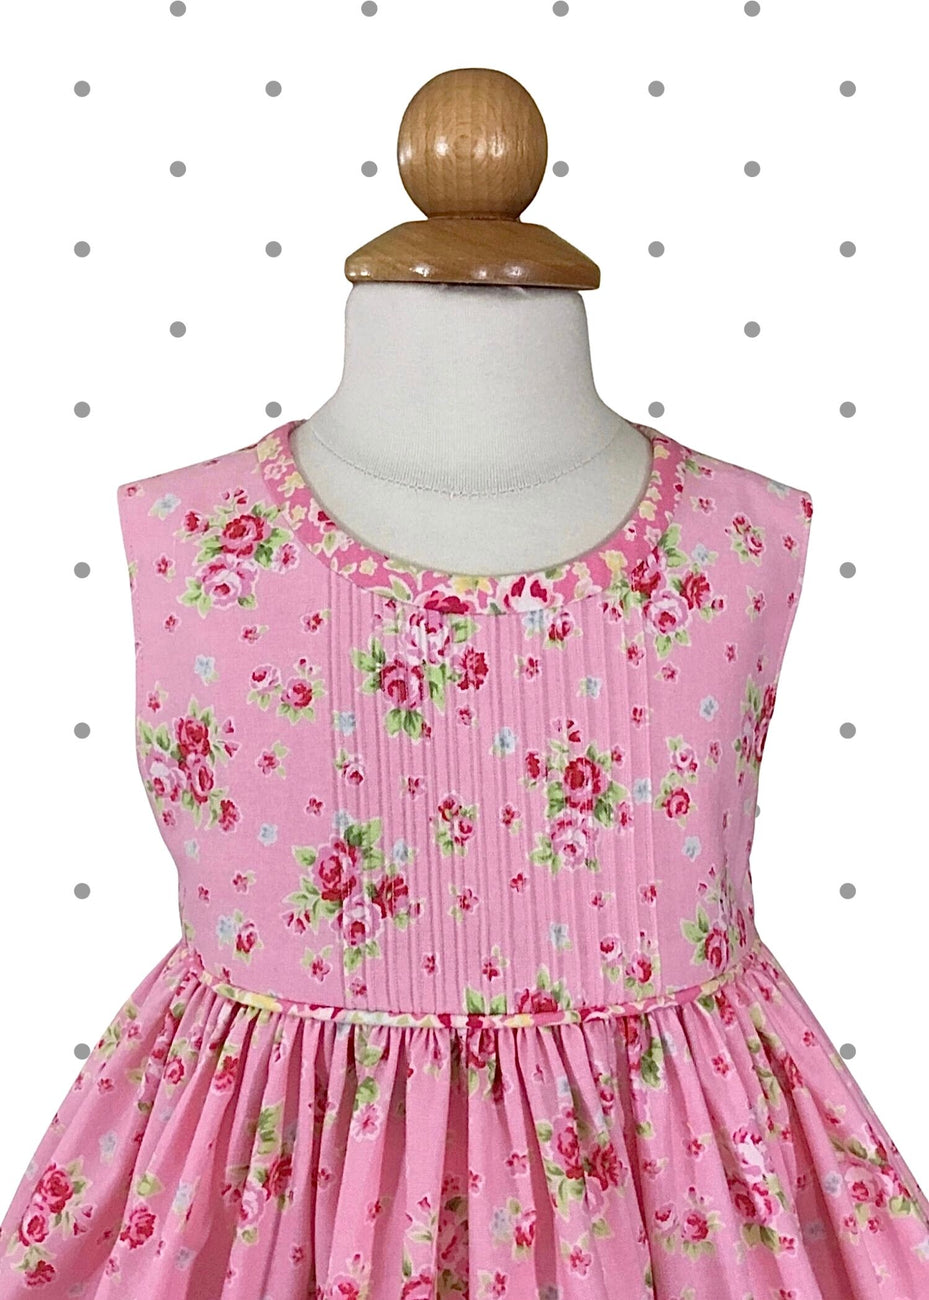 Tea Party Pink ~ Size 12 months